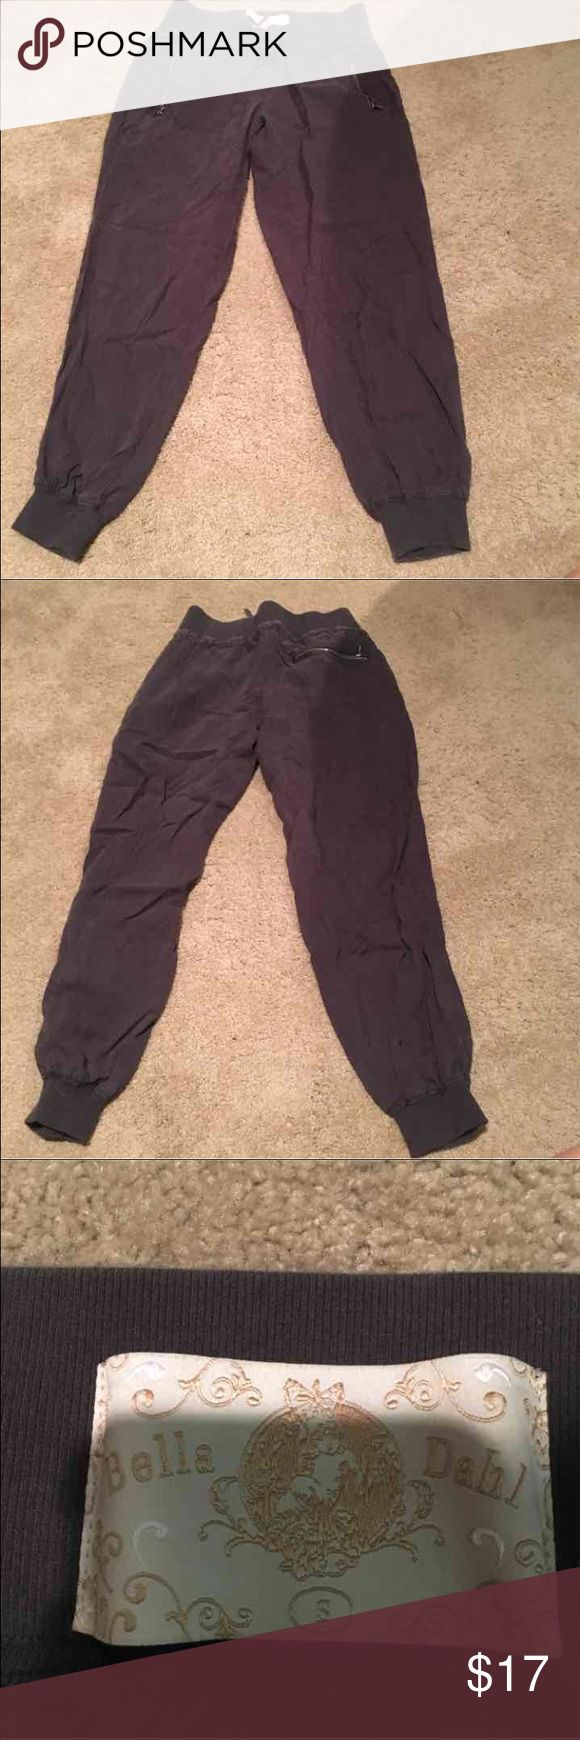 Joggers size small Like New Grey / brown joggers. Light weight with zipper pockets in front and one in back. Elastic waistband and ankles. Size small. In perfect condition, barely worn. Pants Track Pants & Joggers